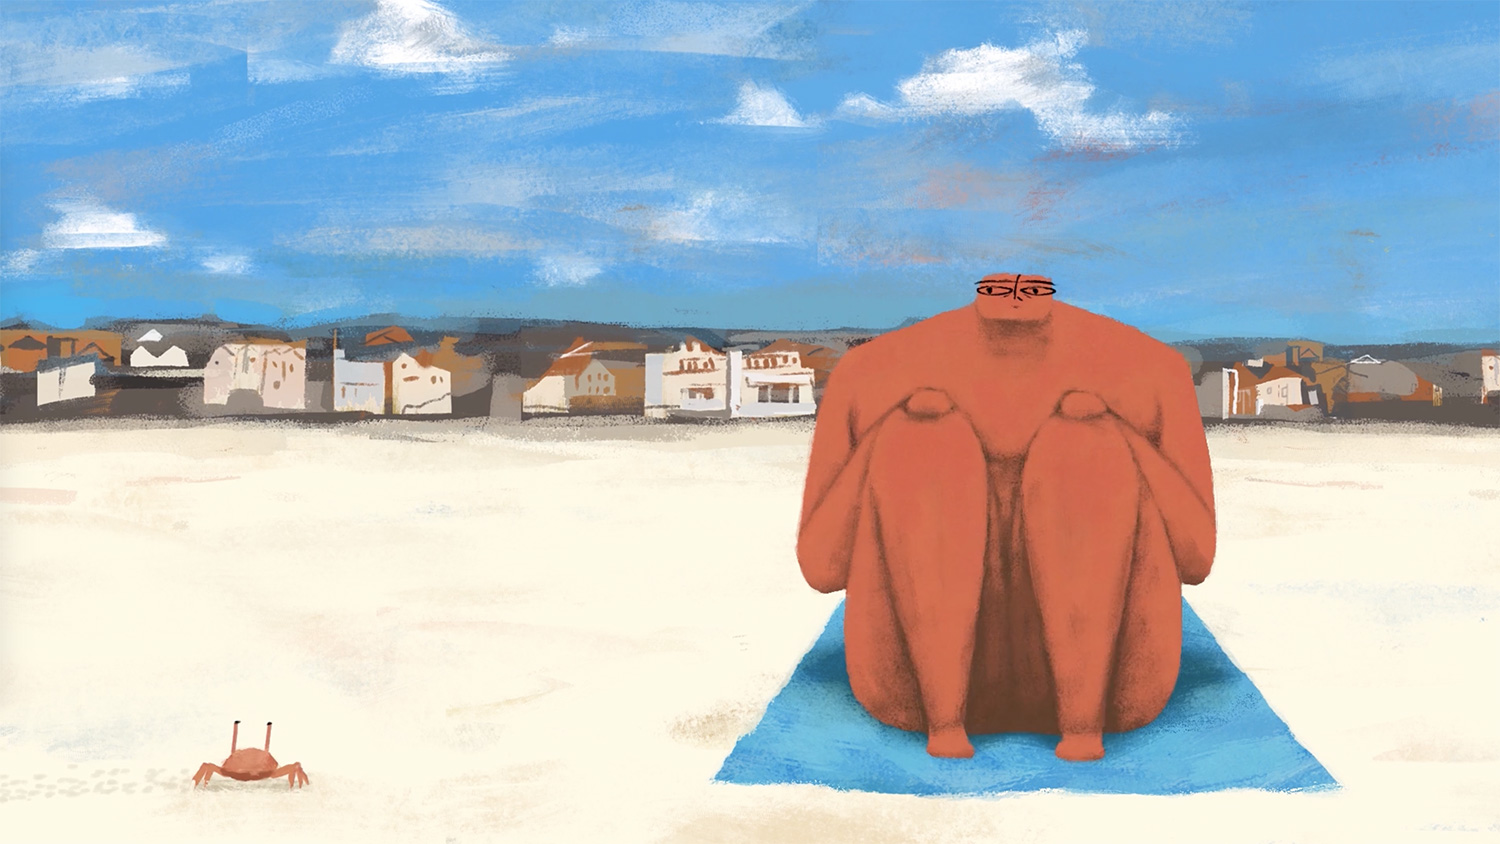 Towels: An Animated Battle for Beach Real Estate Serves as a Metaphor for Rising Global Tension